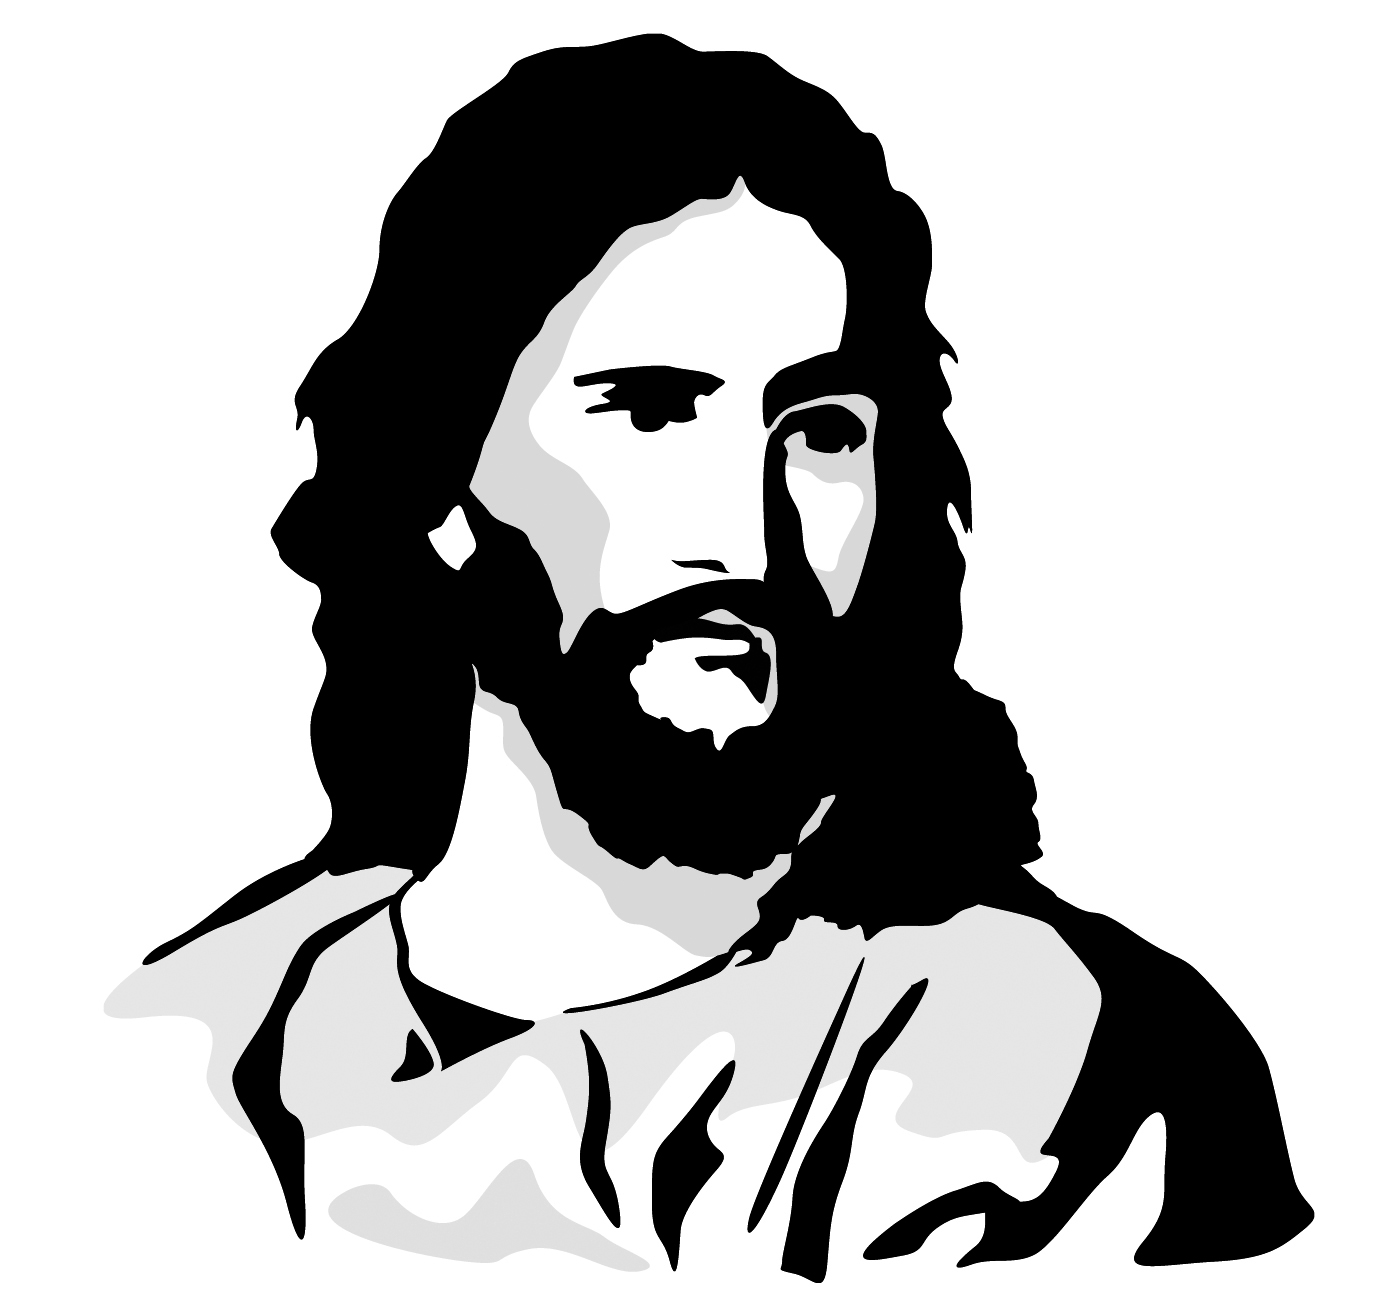 clipart cartoon jesus - photo #9